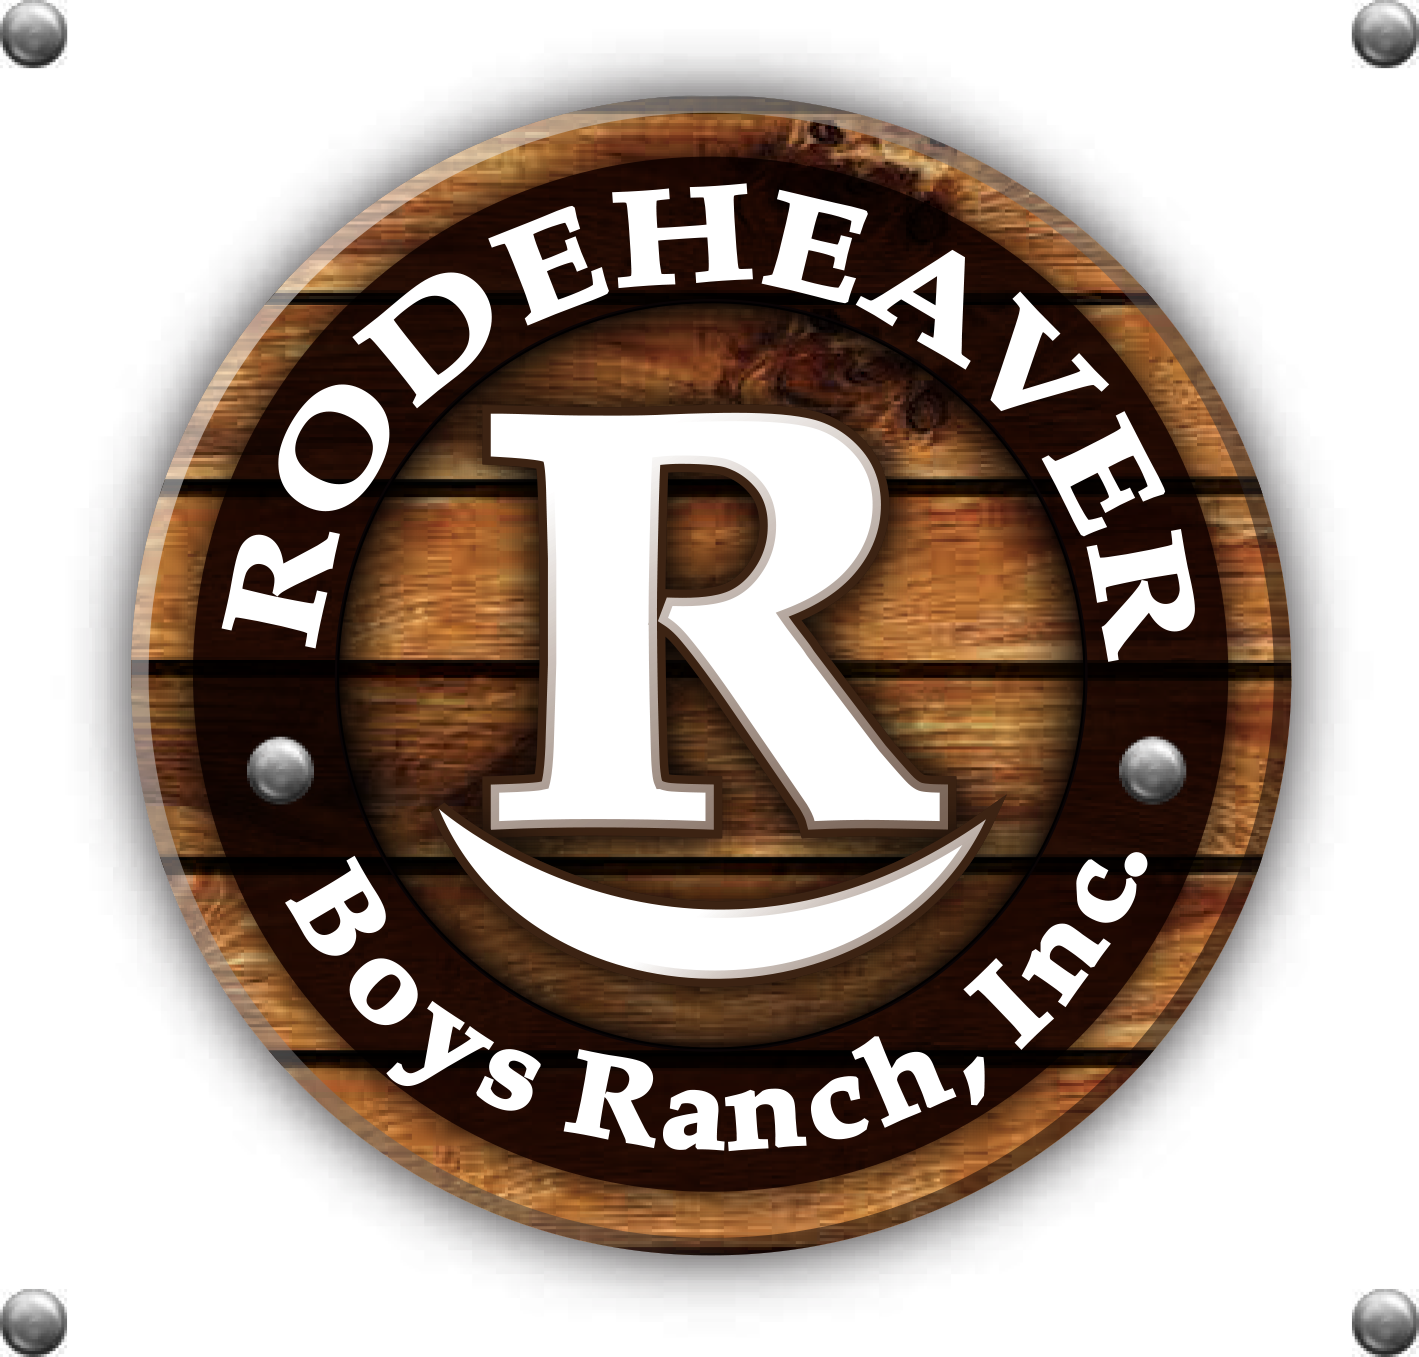 Rodeheaver Boys Ranch